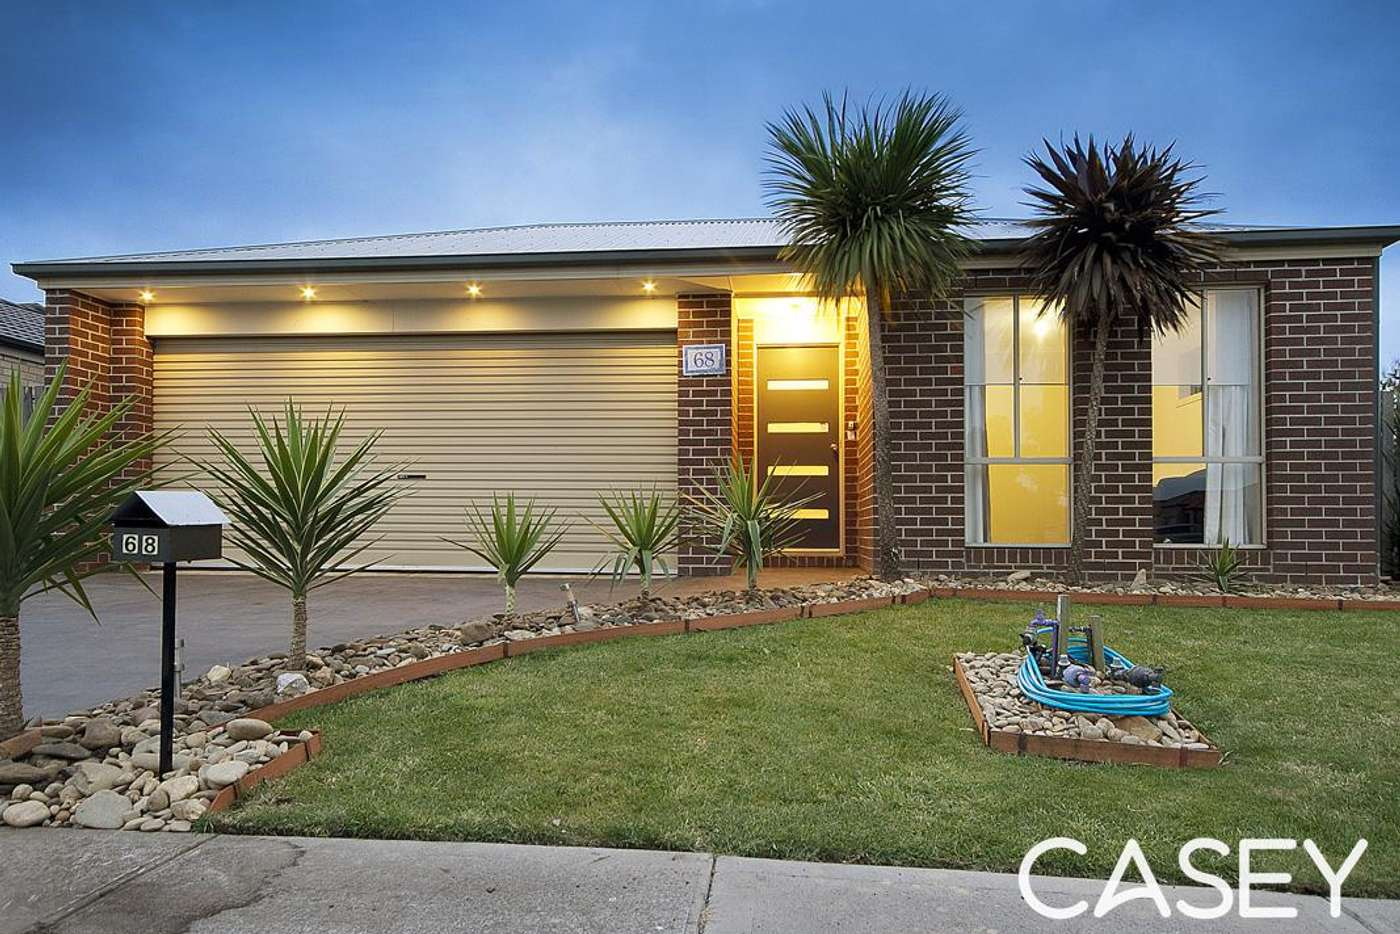 Main view of Homely house listing, 68 Tyndall Street, Cranbourne East VIC 3977